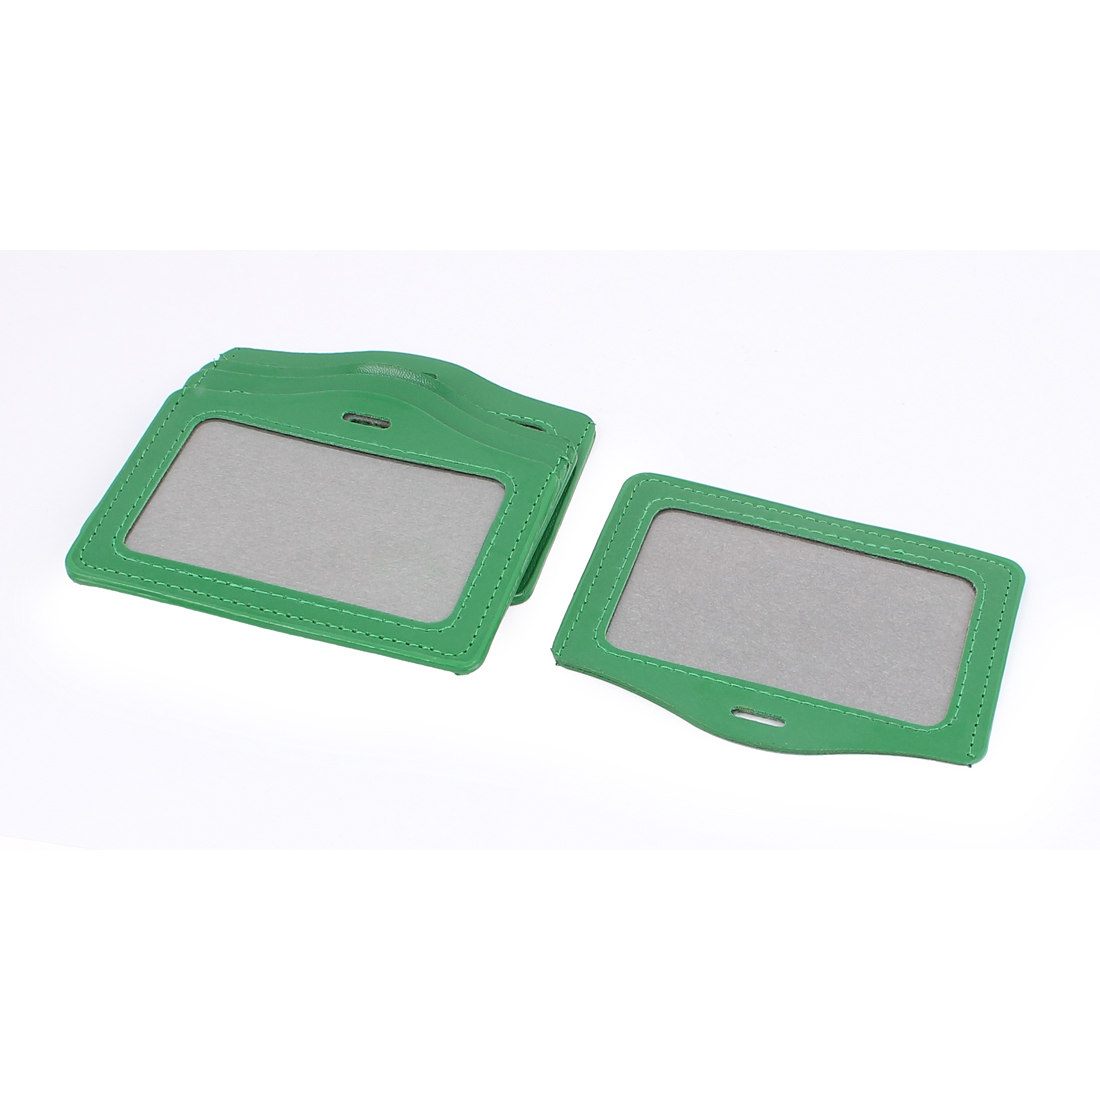 5pcs Green Faux Leather School Office Horizontal Business ID Badge Card Holder Container